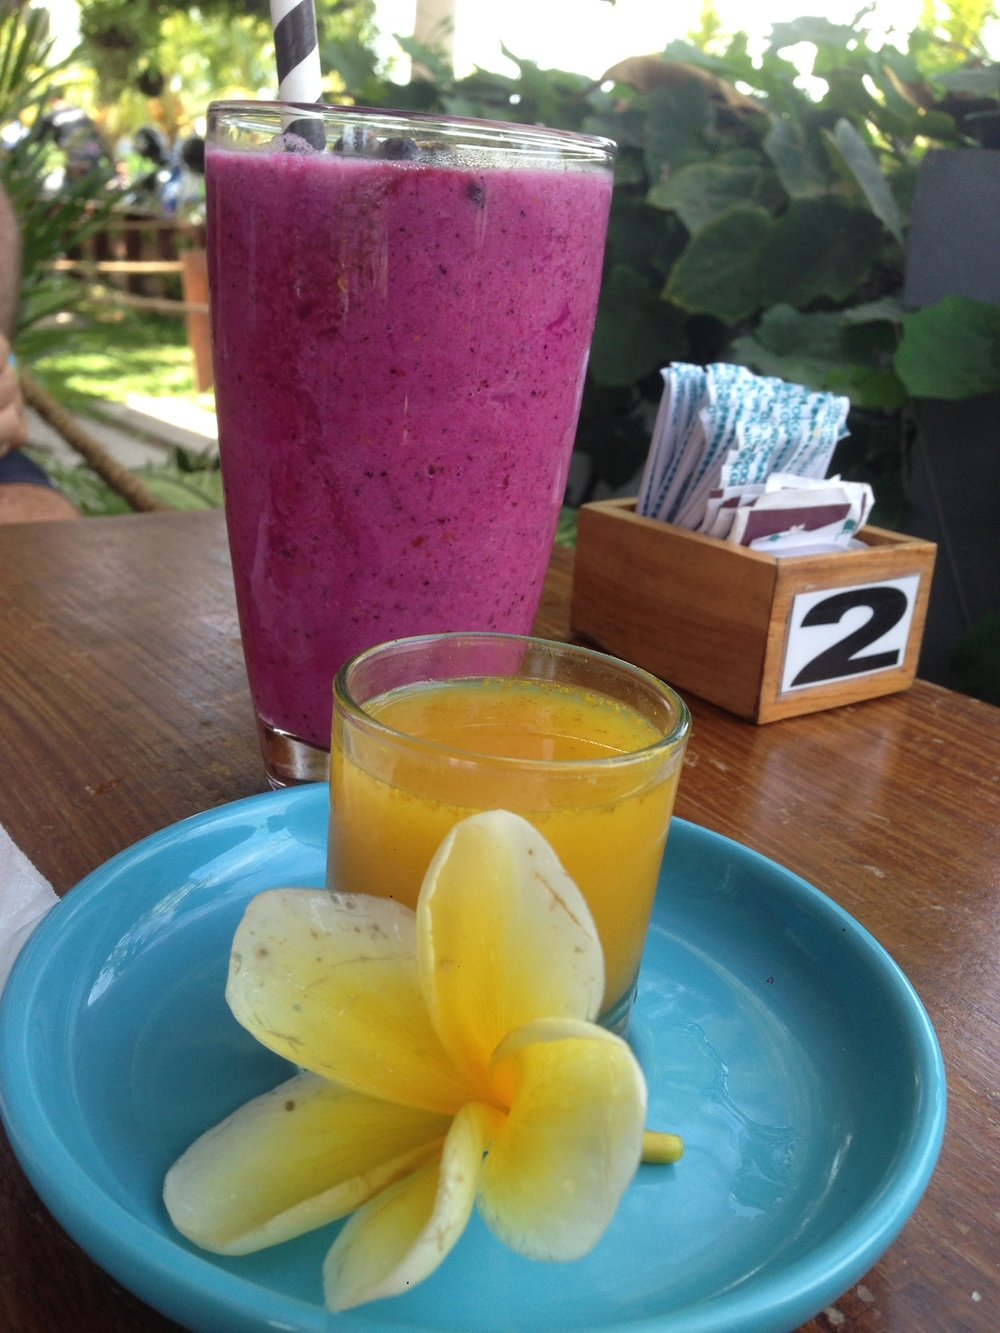 You can never go wrong with Smoothies in Indo.